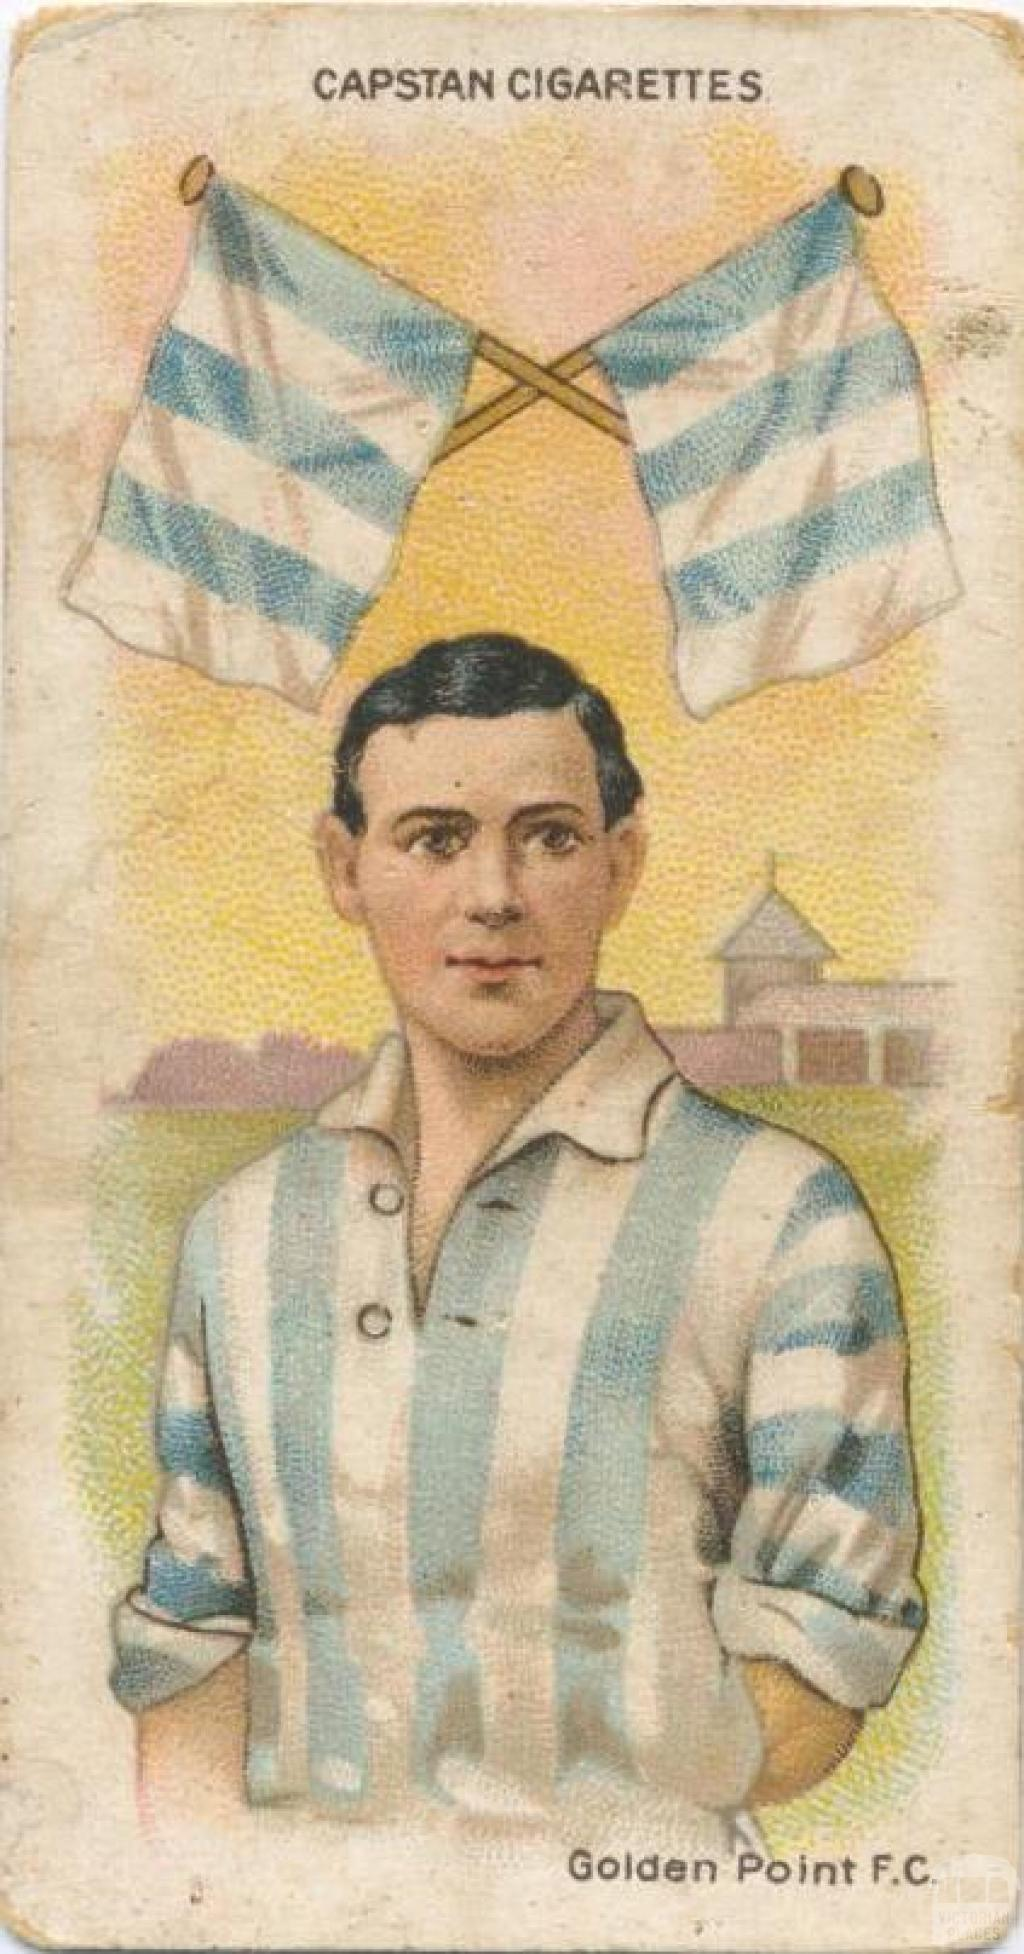 Golden Point Football Club, Capstan Cigarettes Card